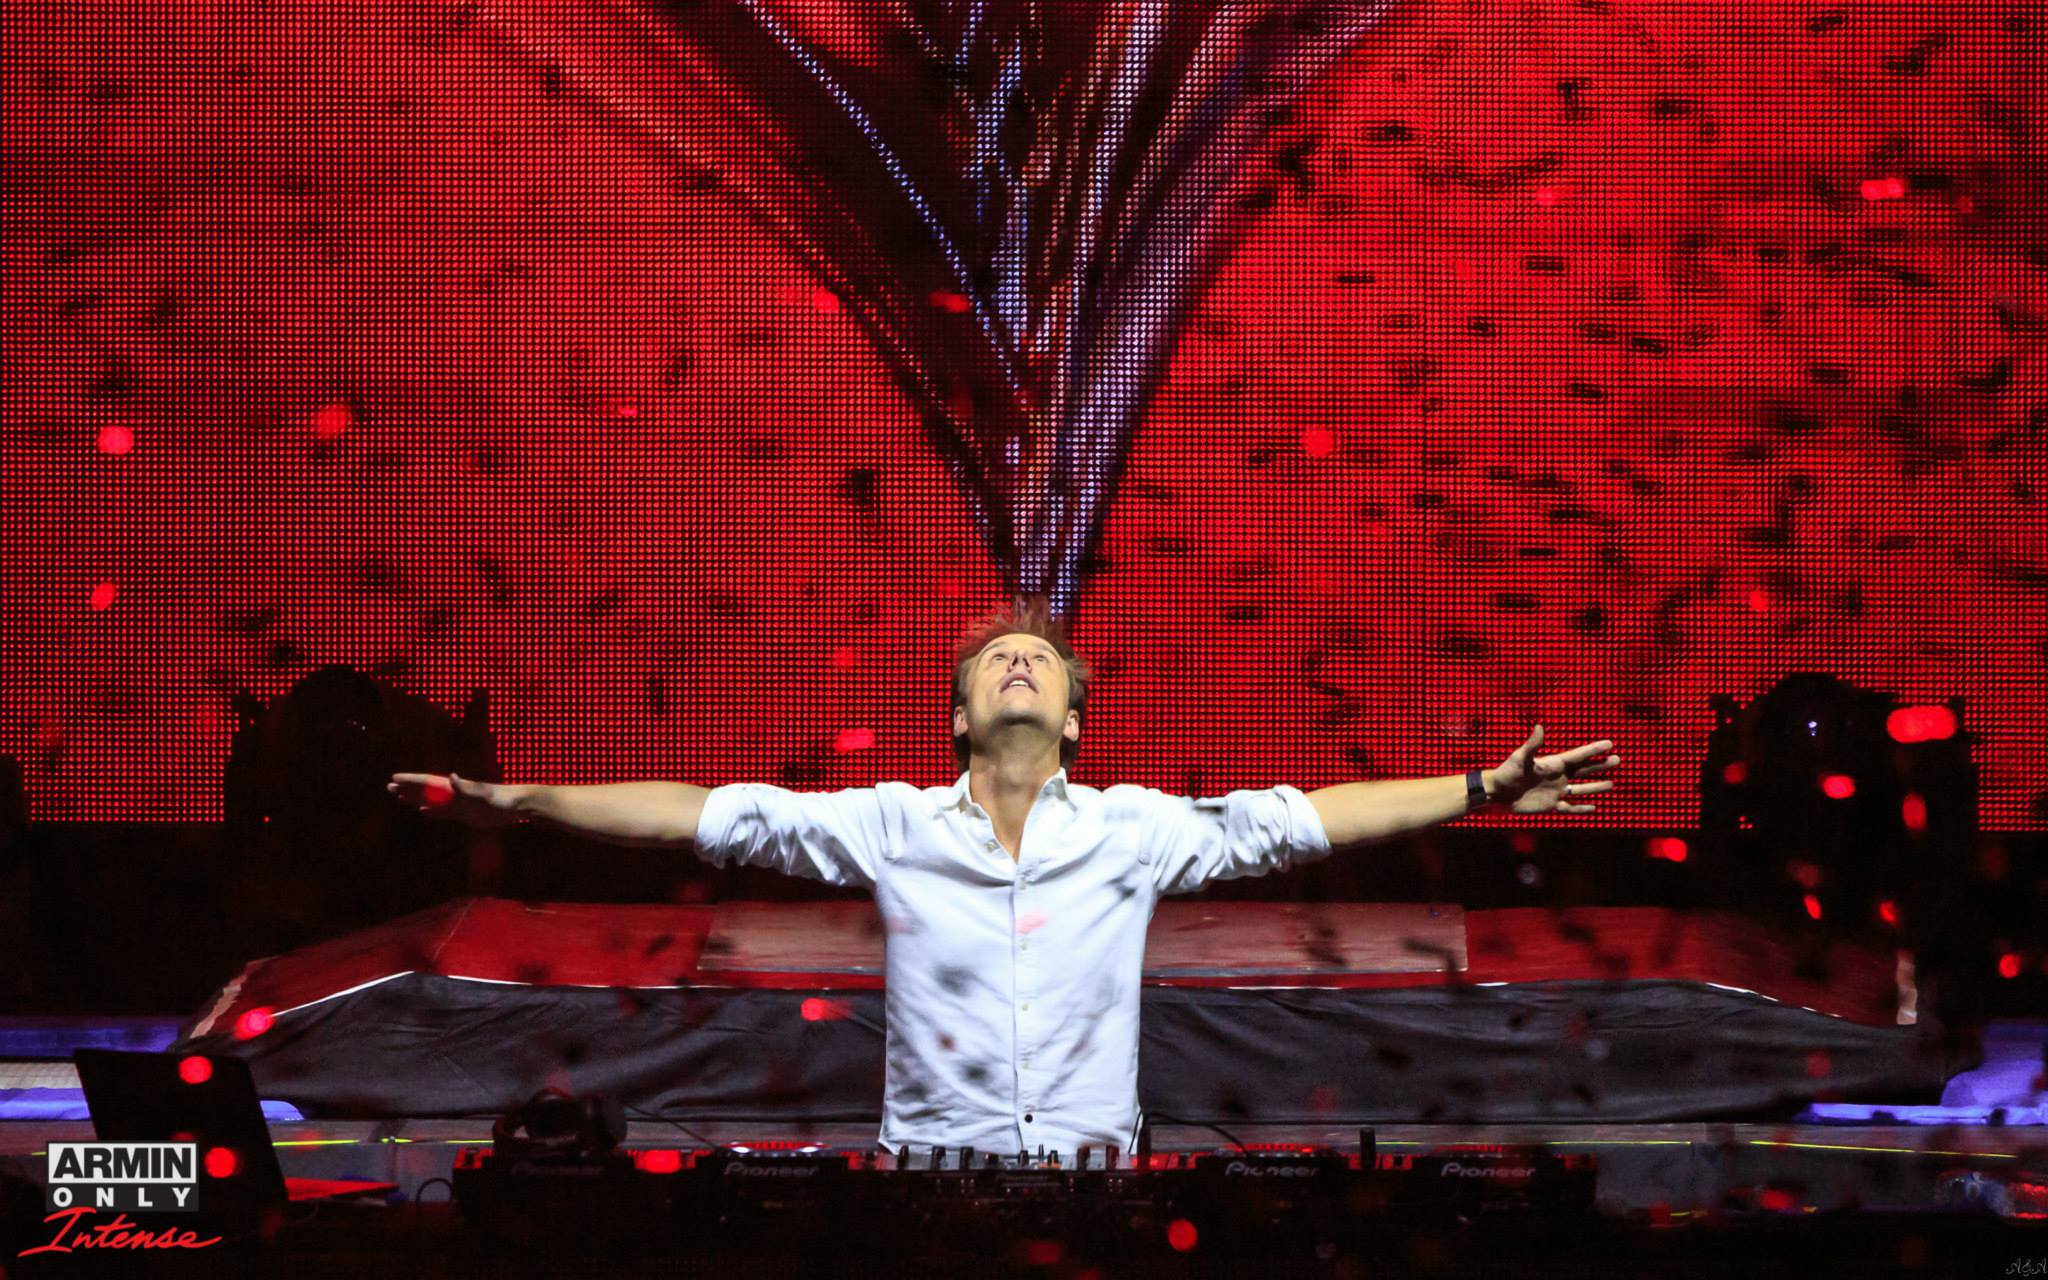 Armin van Buuren Returns To Southern California With Armin Only: Intense